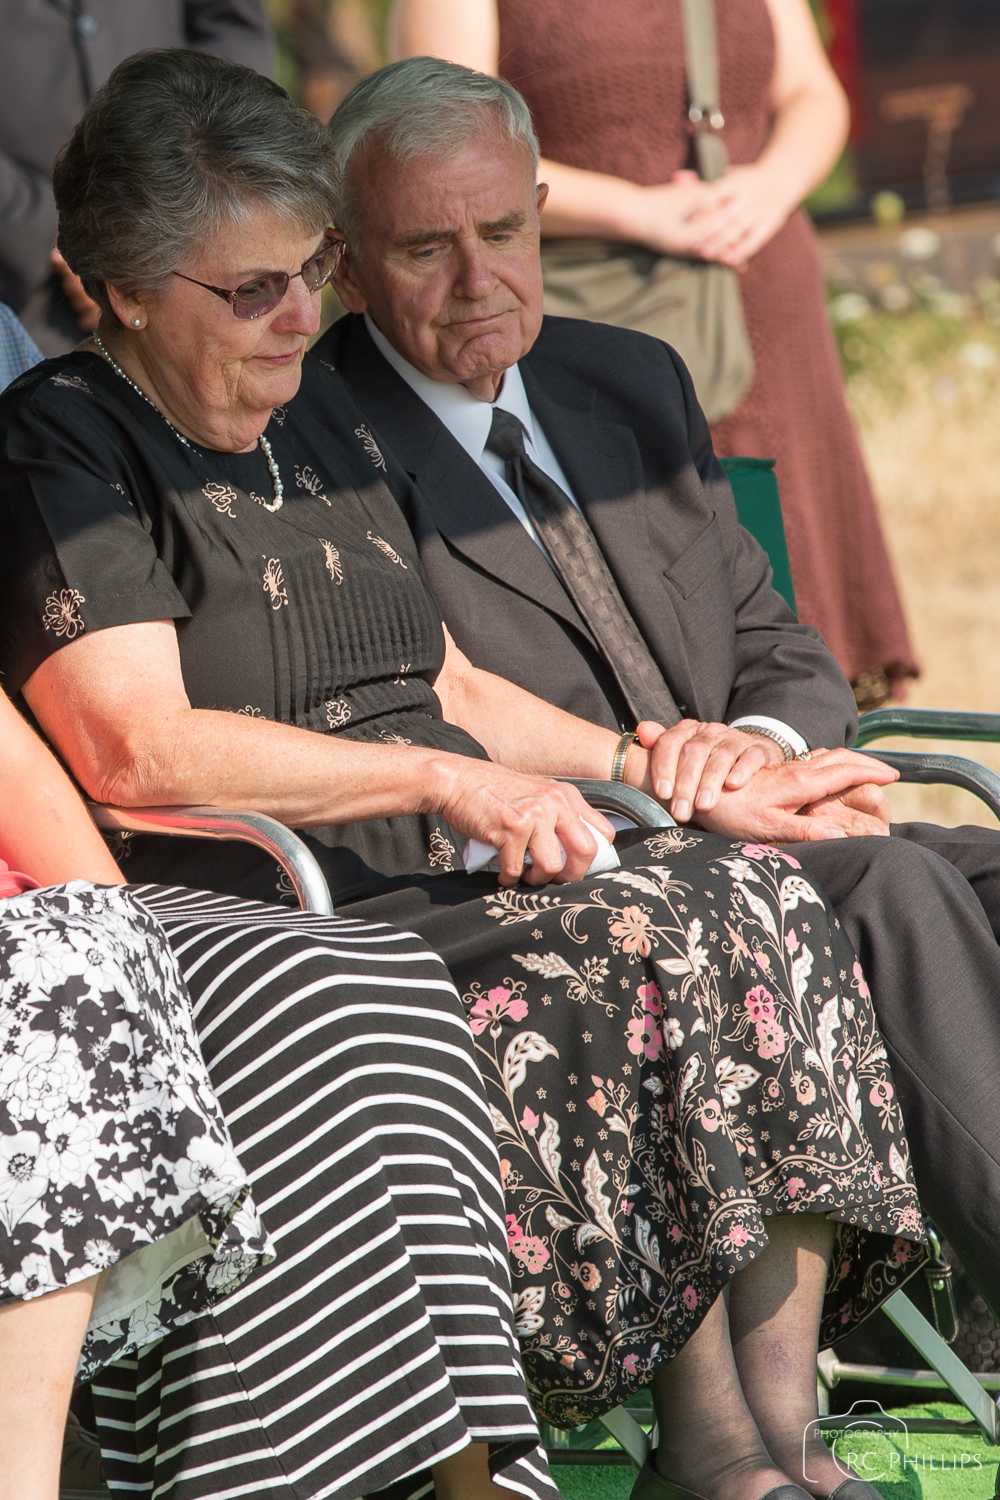 1/200 Sec. @ f/5.6 and ISO 100 Dan's parents Ron and Myrna at graveside service.